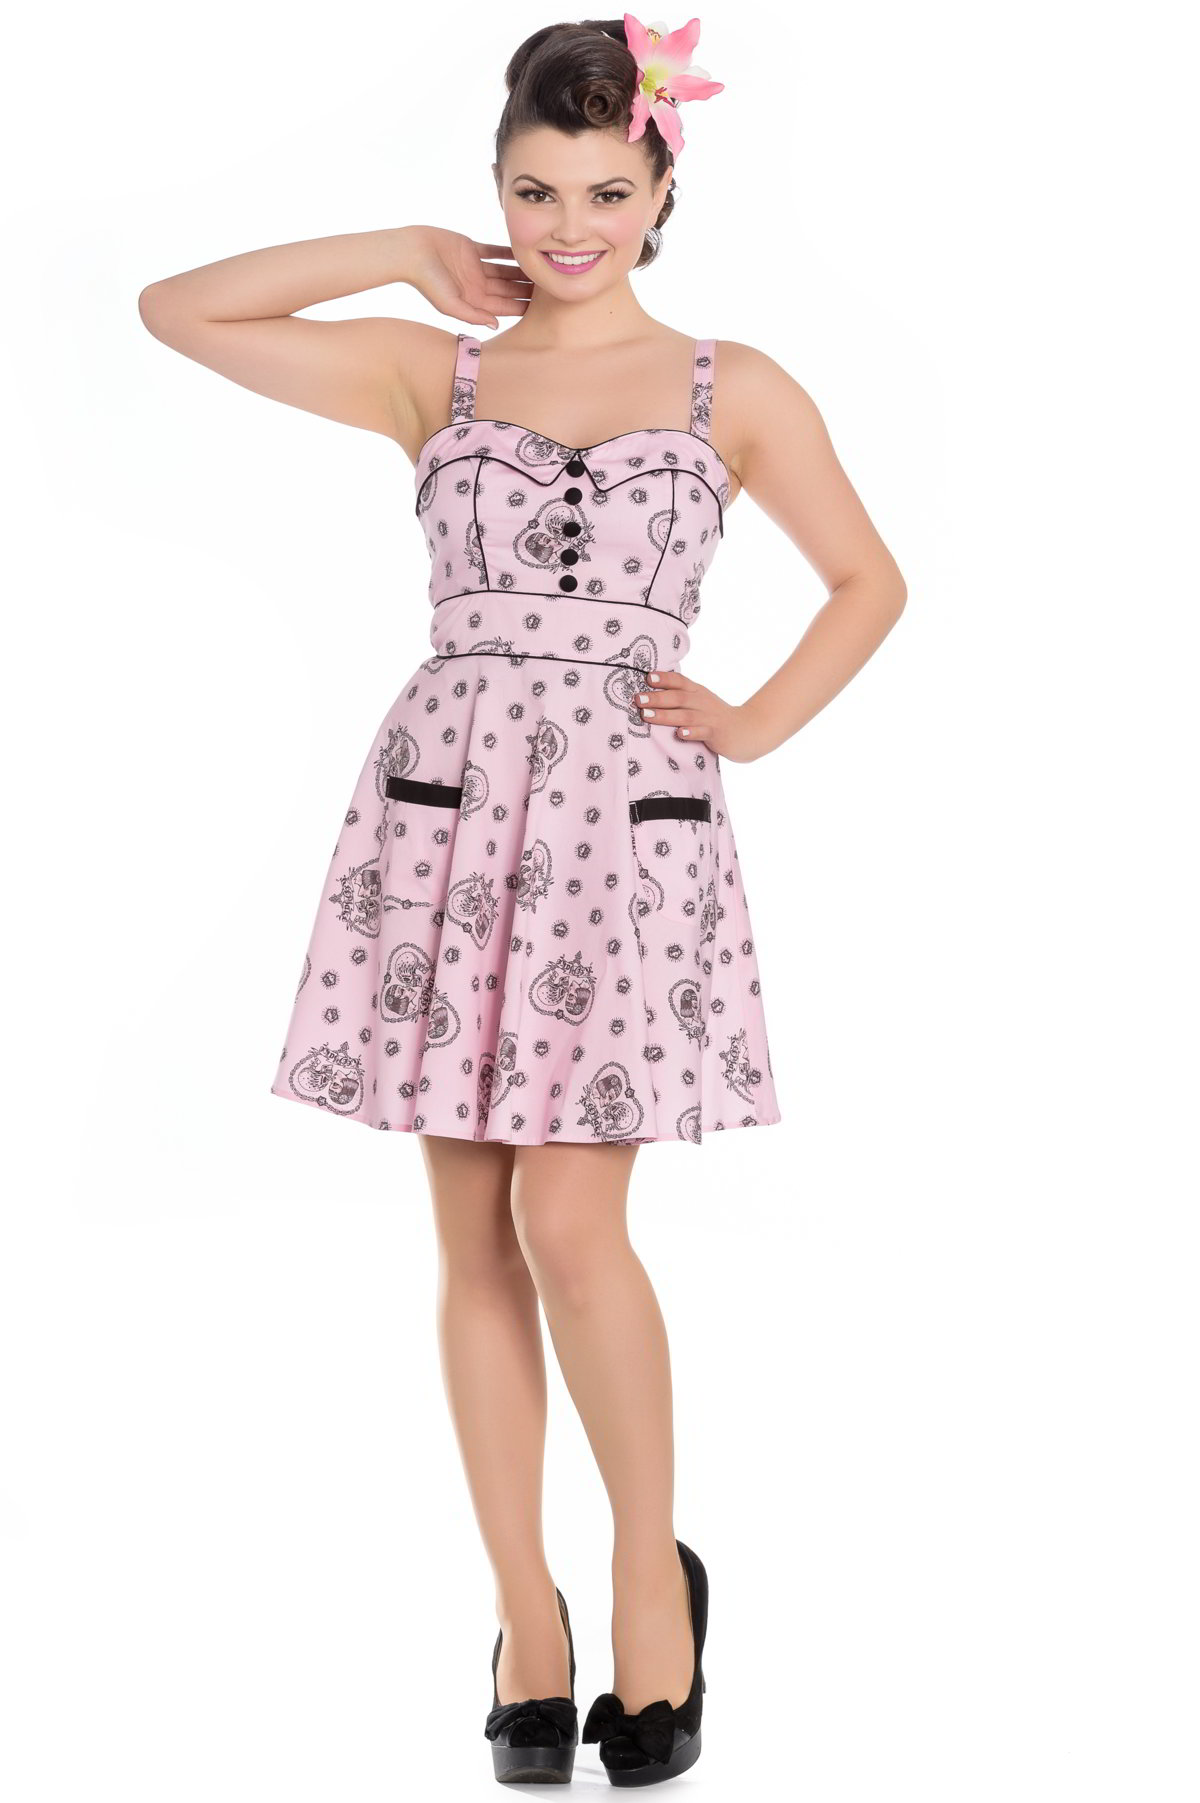 8e5877007 Day Of The Dead Dresses   Dia de los Muertos Pinup Dresses